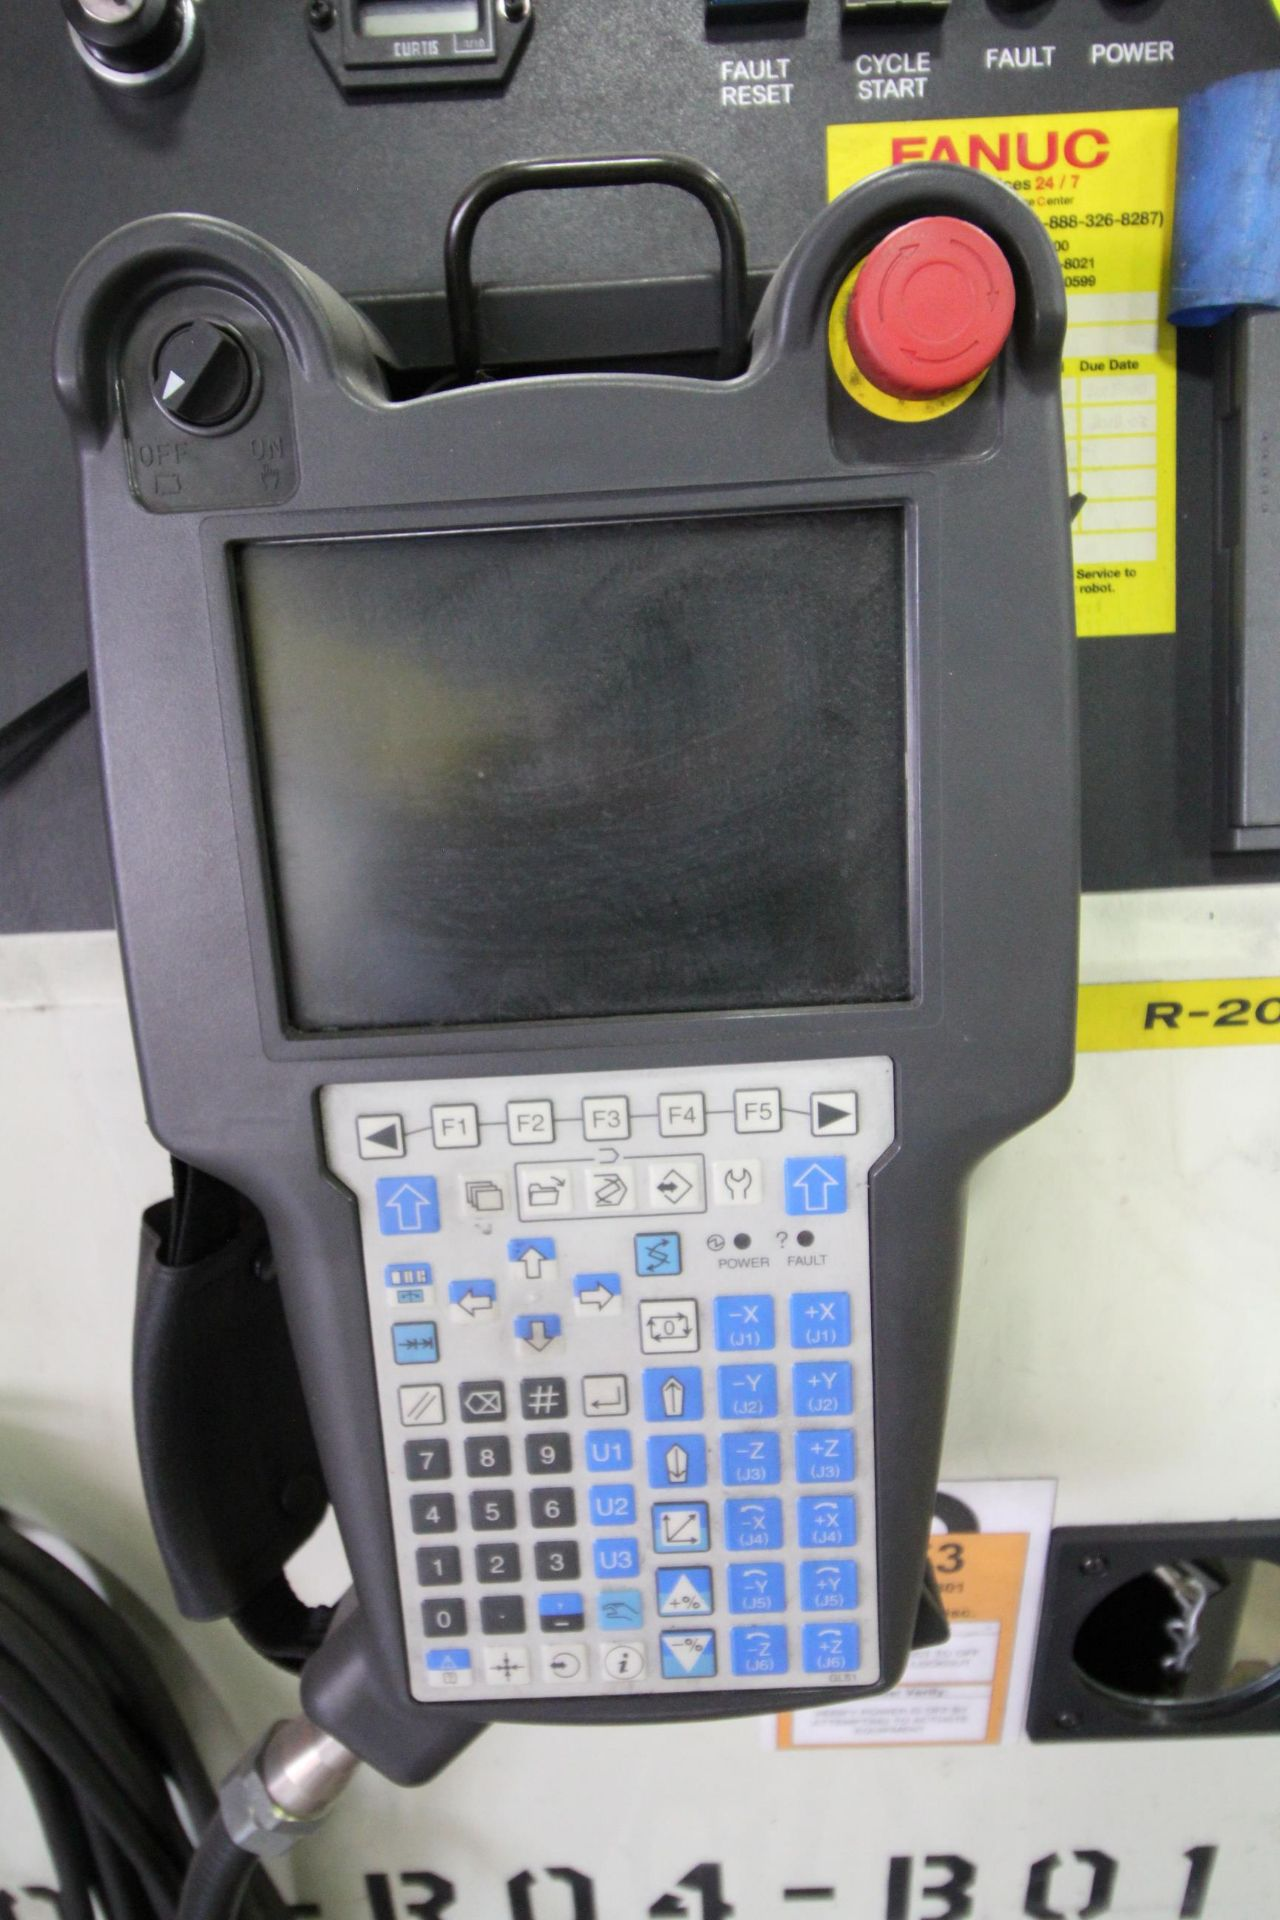 FANUC ROBOT R-2000iB/210F WITH R-30iA CONTROL, CABLES & TEACH PENDANT, SN 148715, YEAR 2014 - Image 6 of 8